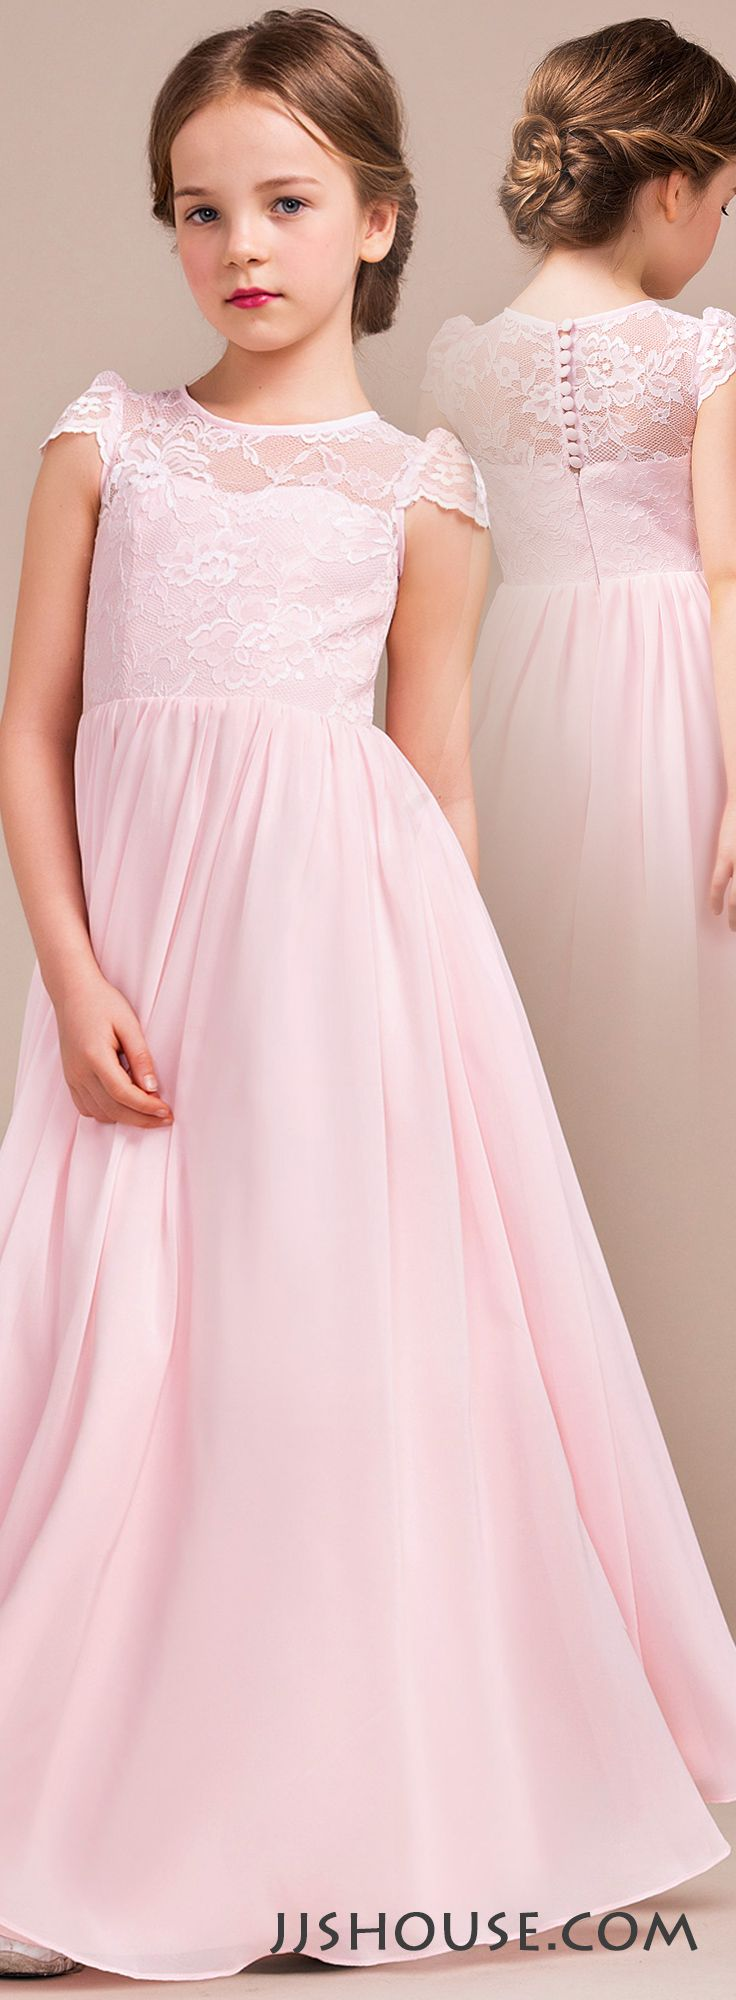 Best 25 junior bridesmaid dresses ideas on pinterest styles of sweet junior bridesmaid dress jjshouse ombrellifo Images